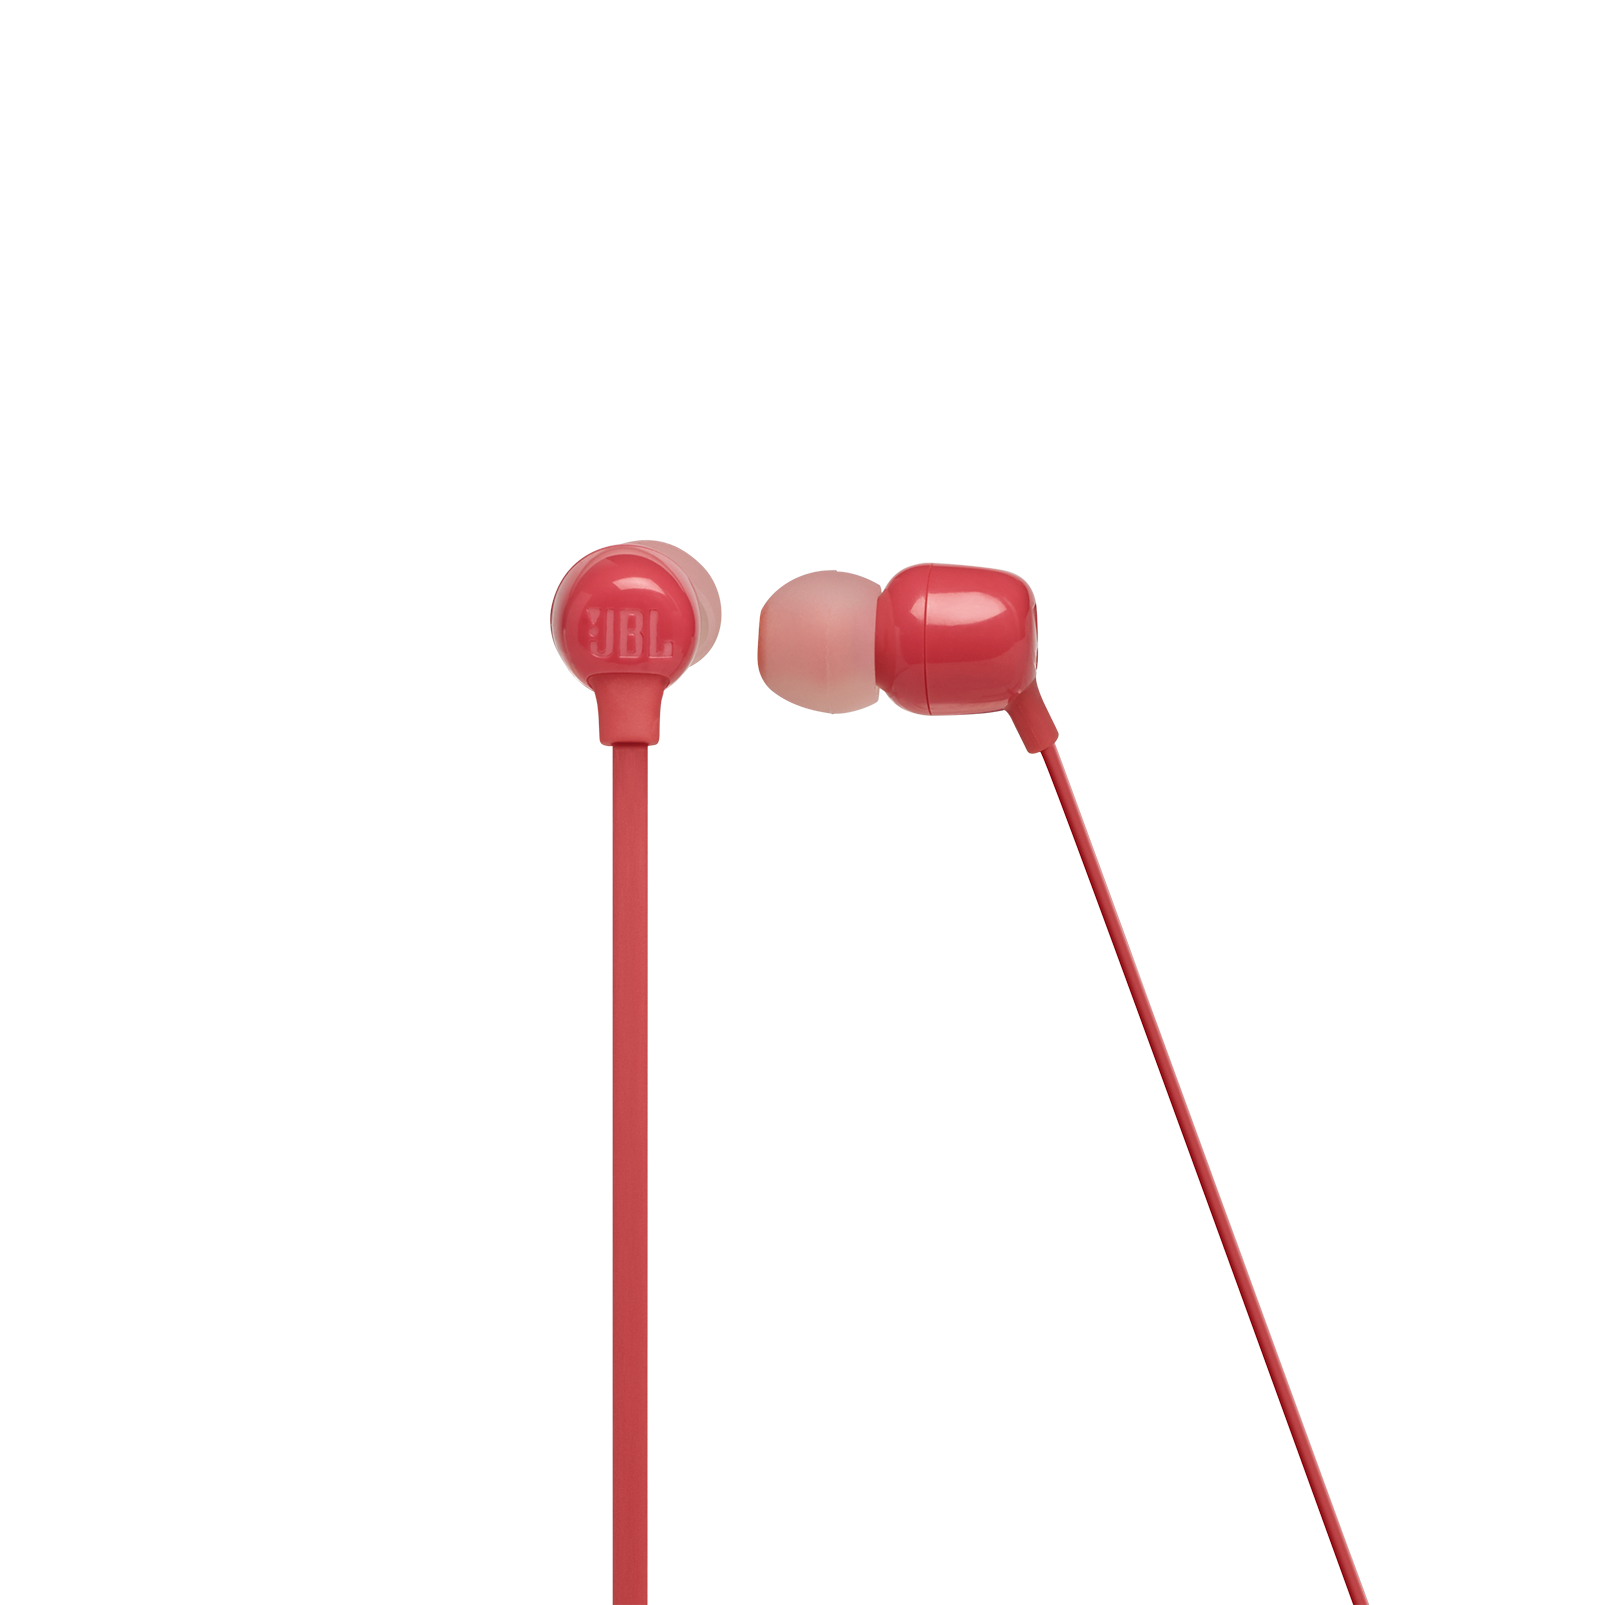 JBL TUNE 115BT - Coral Orange - Wireless In-Ear headphones - Front